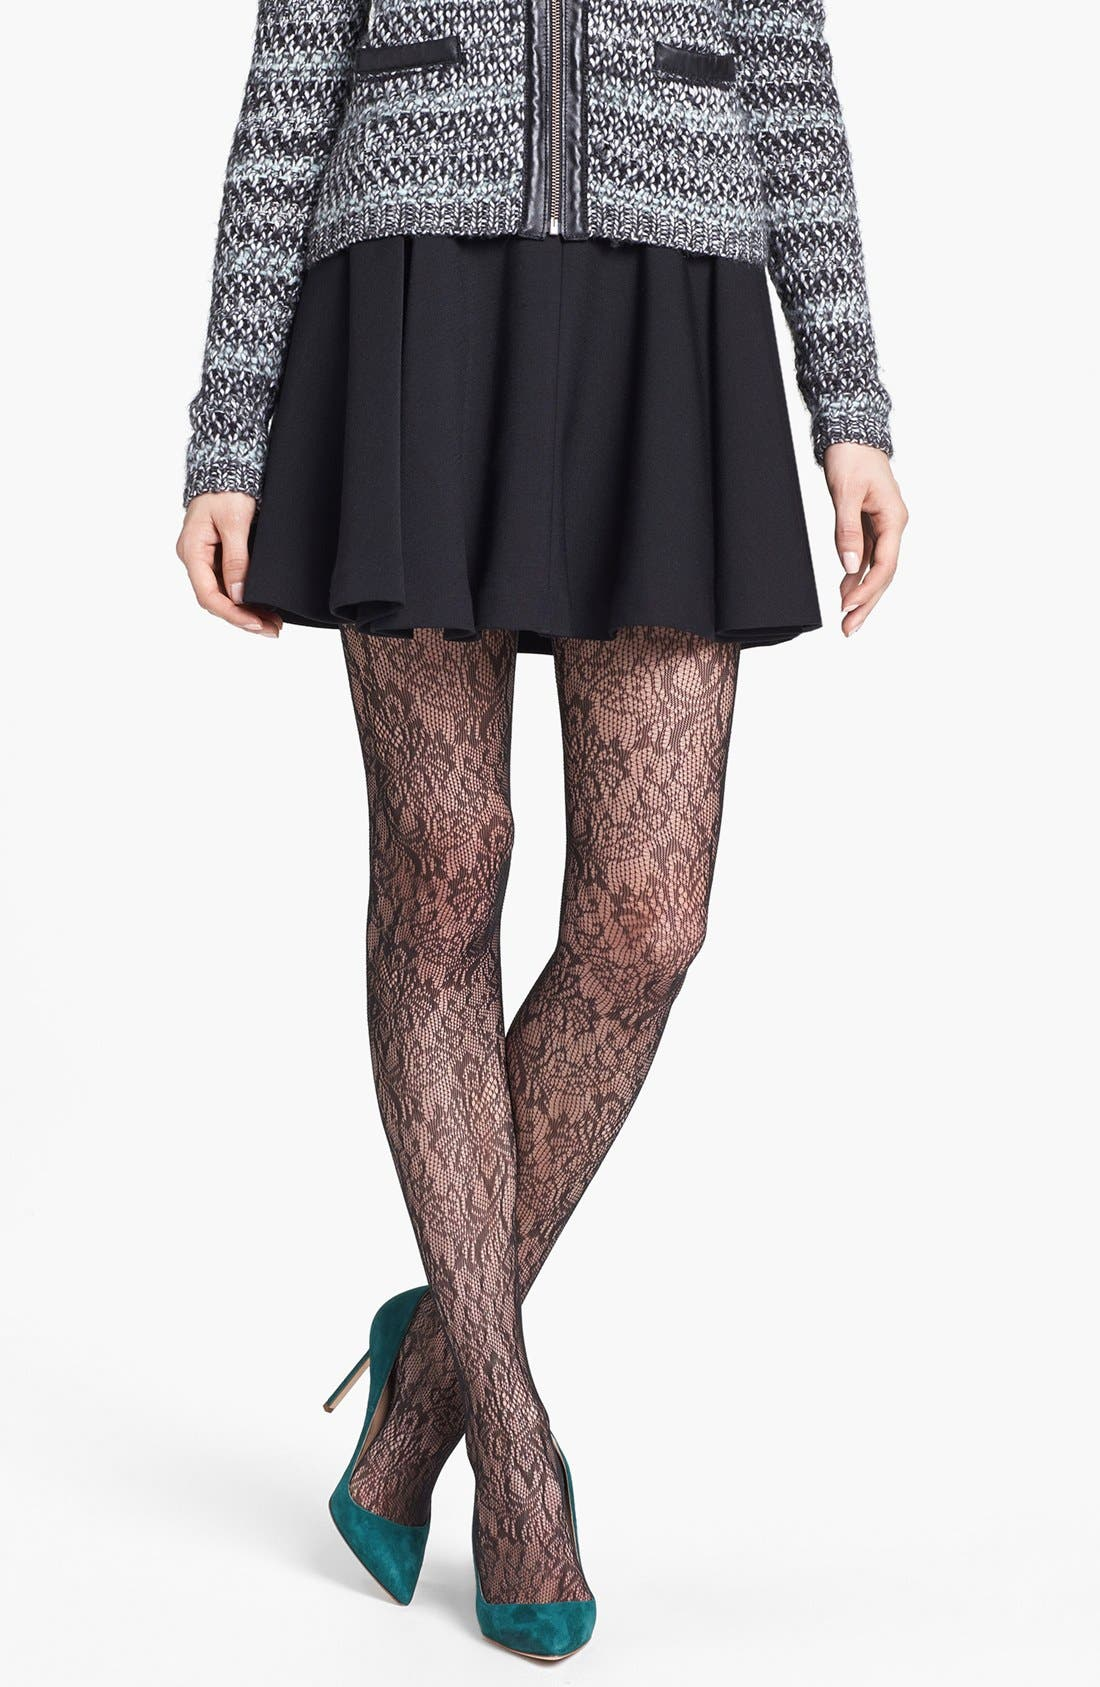 Alternate Image 1 Selected - SPANX® 'Uptown Tight-End Tights® - Look at Me Lace' Tights